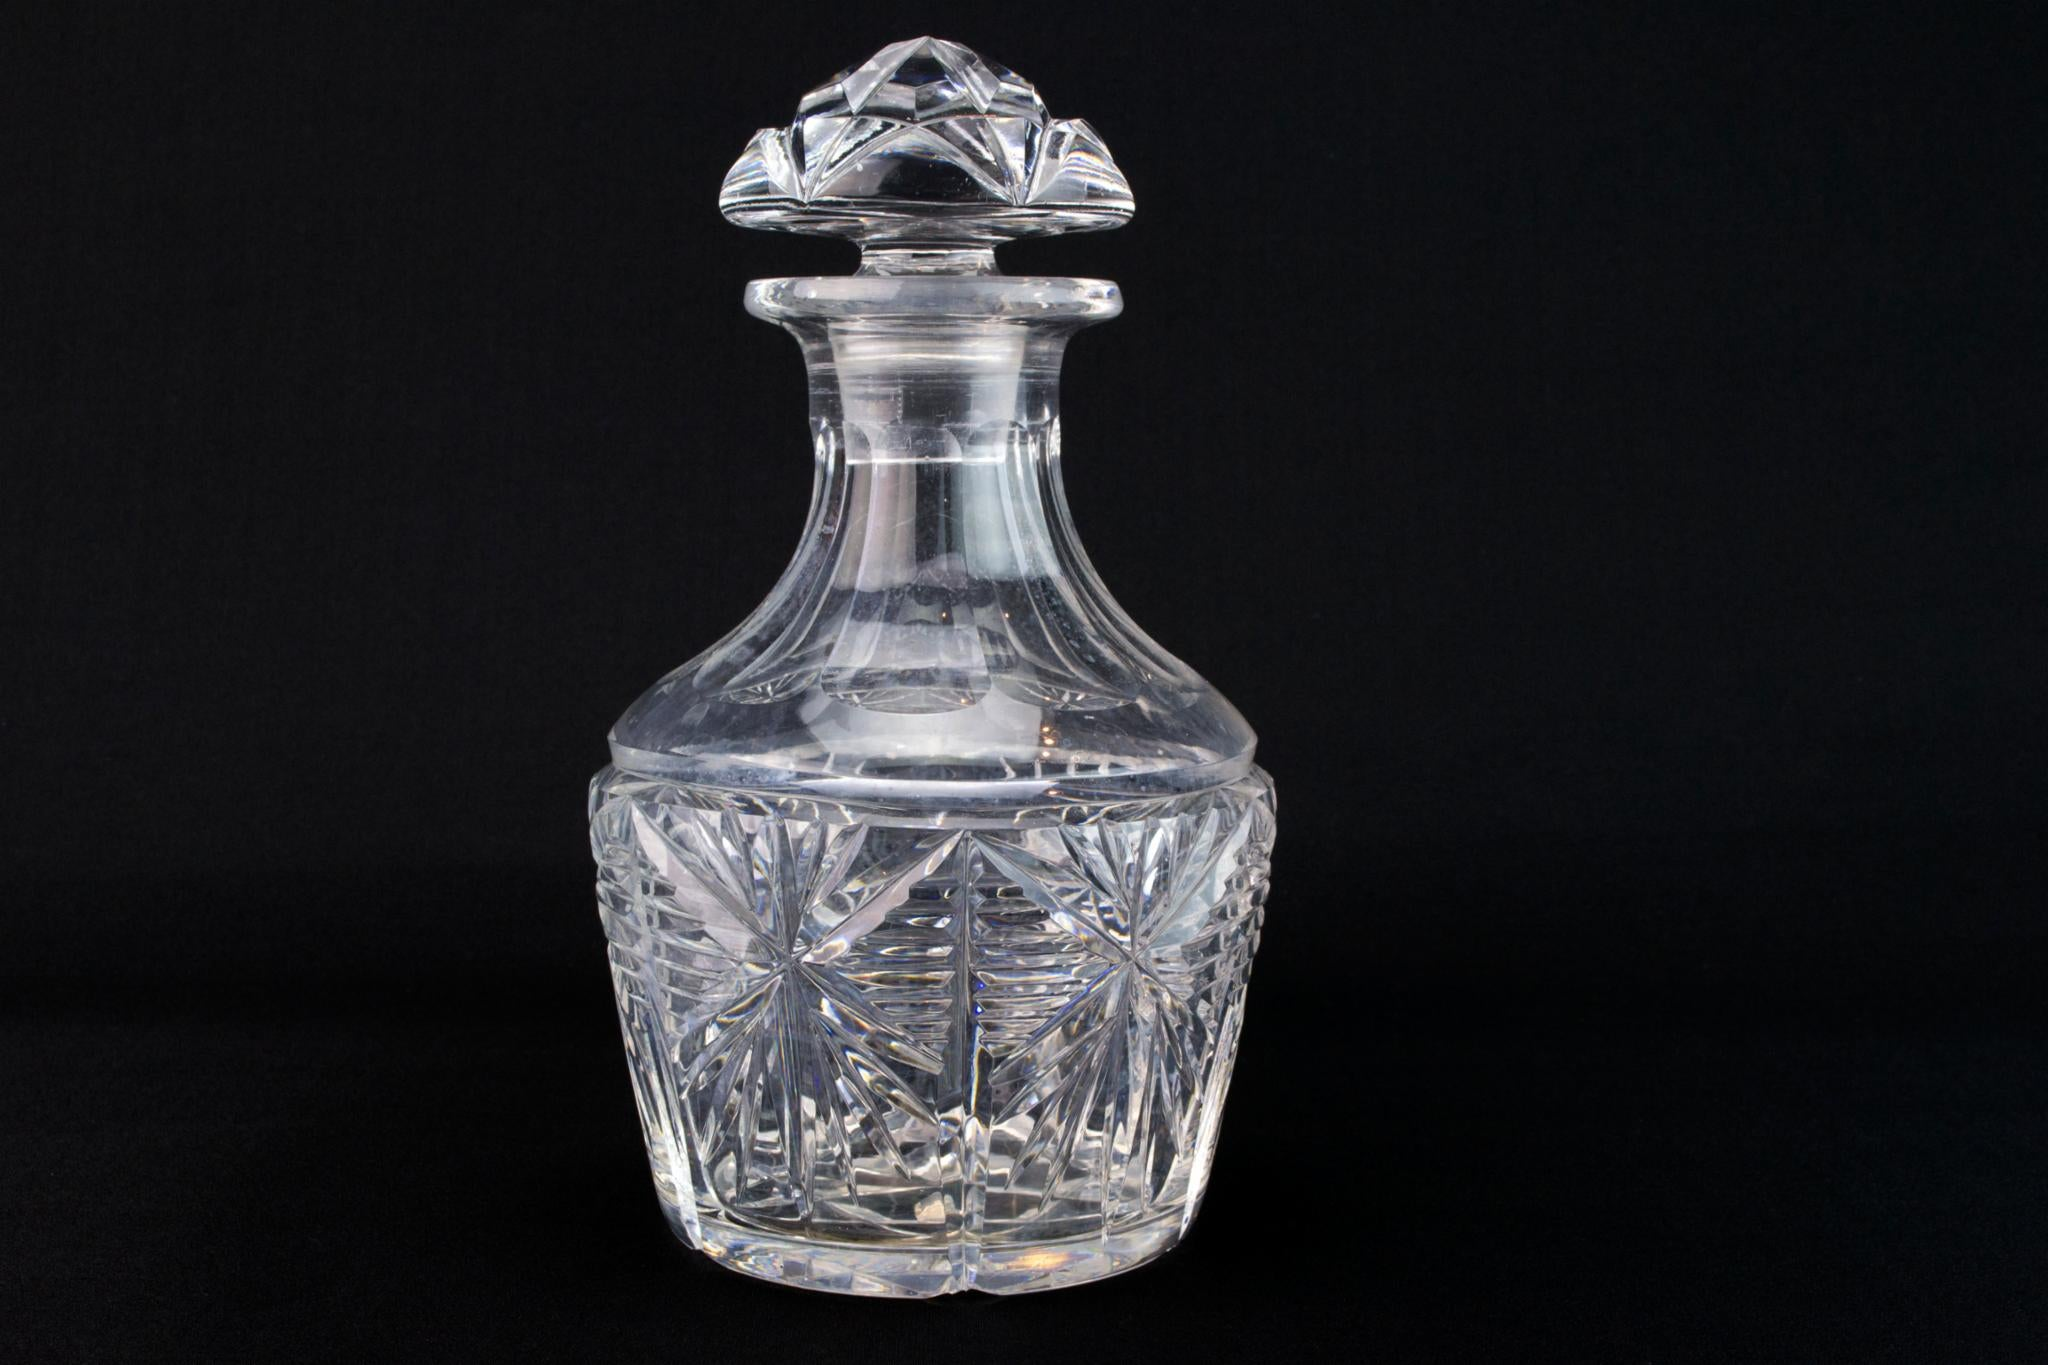 Cut Crystal Glass Whisky Decanter